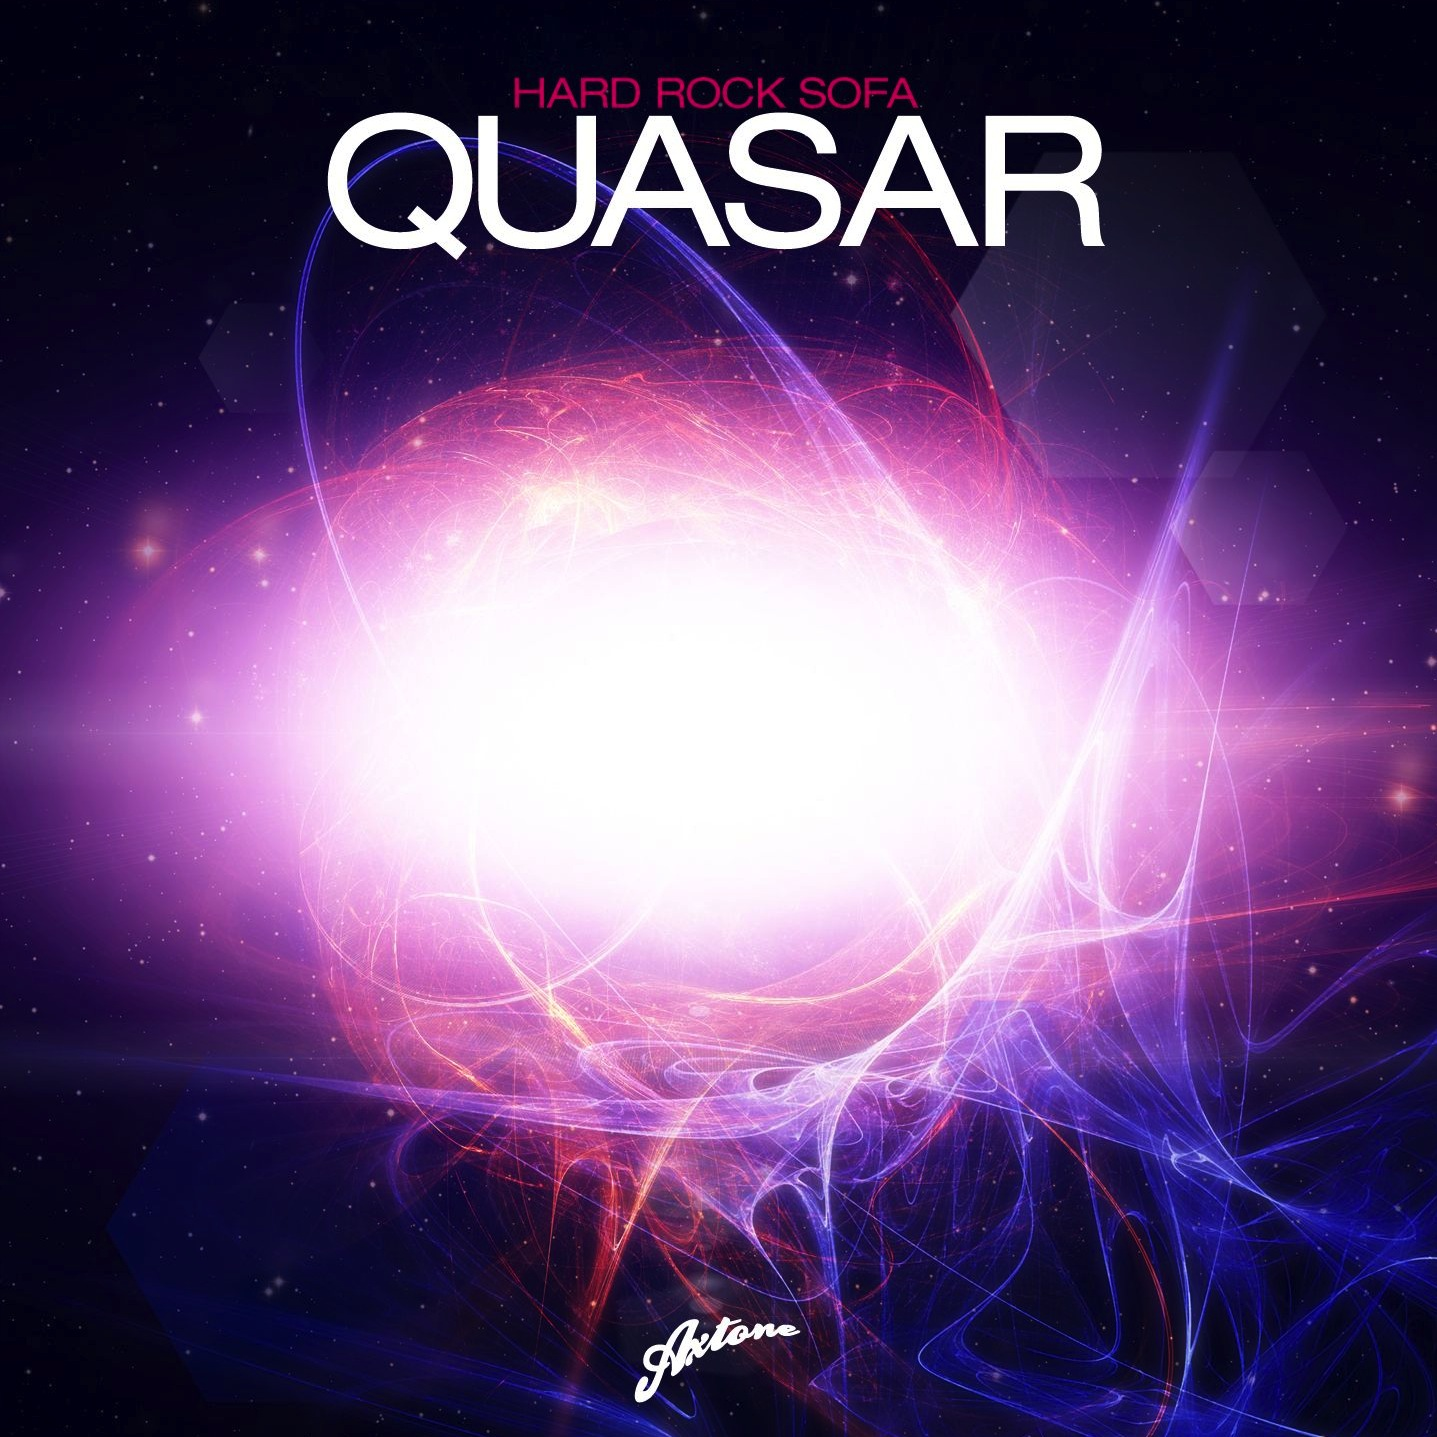 Hard Rock Sofa &#8211; Quasar (Original Mix)